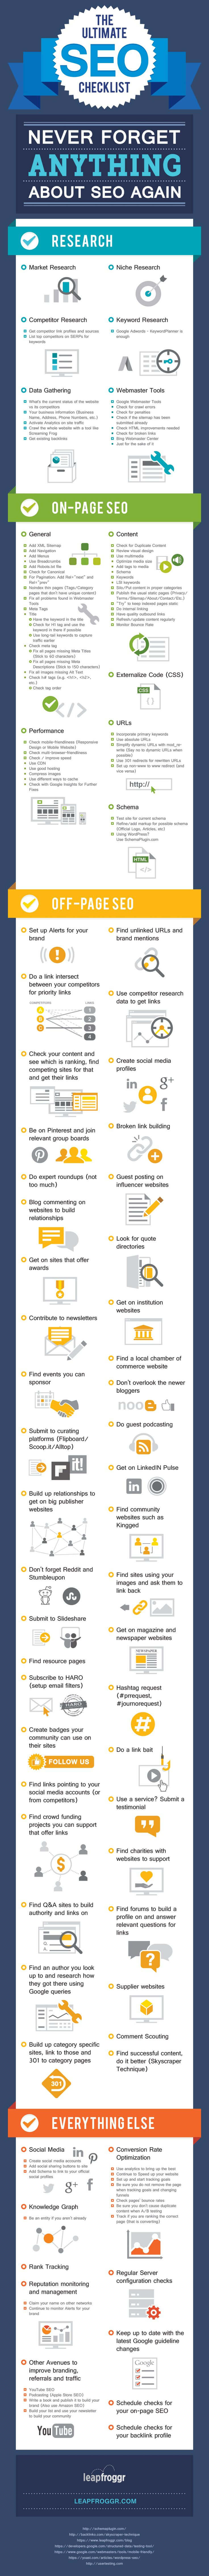 THINGS TO LEARN - SEO FROM THE TOP - Infographic